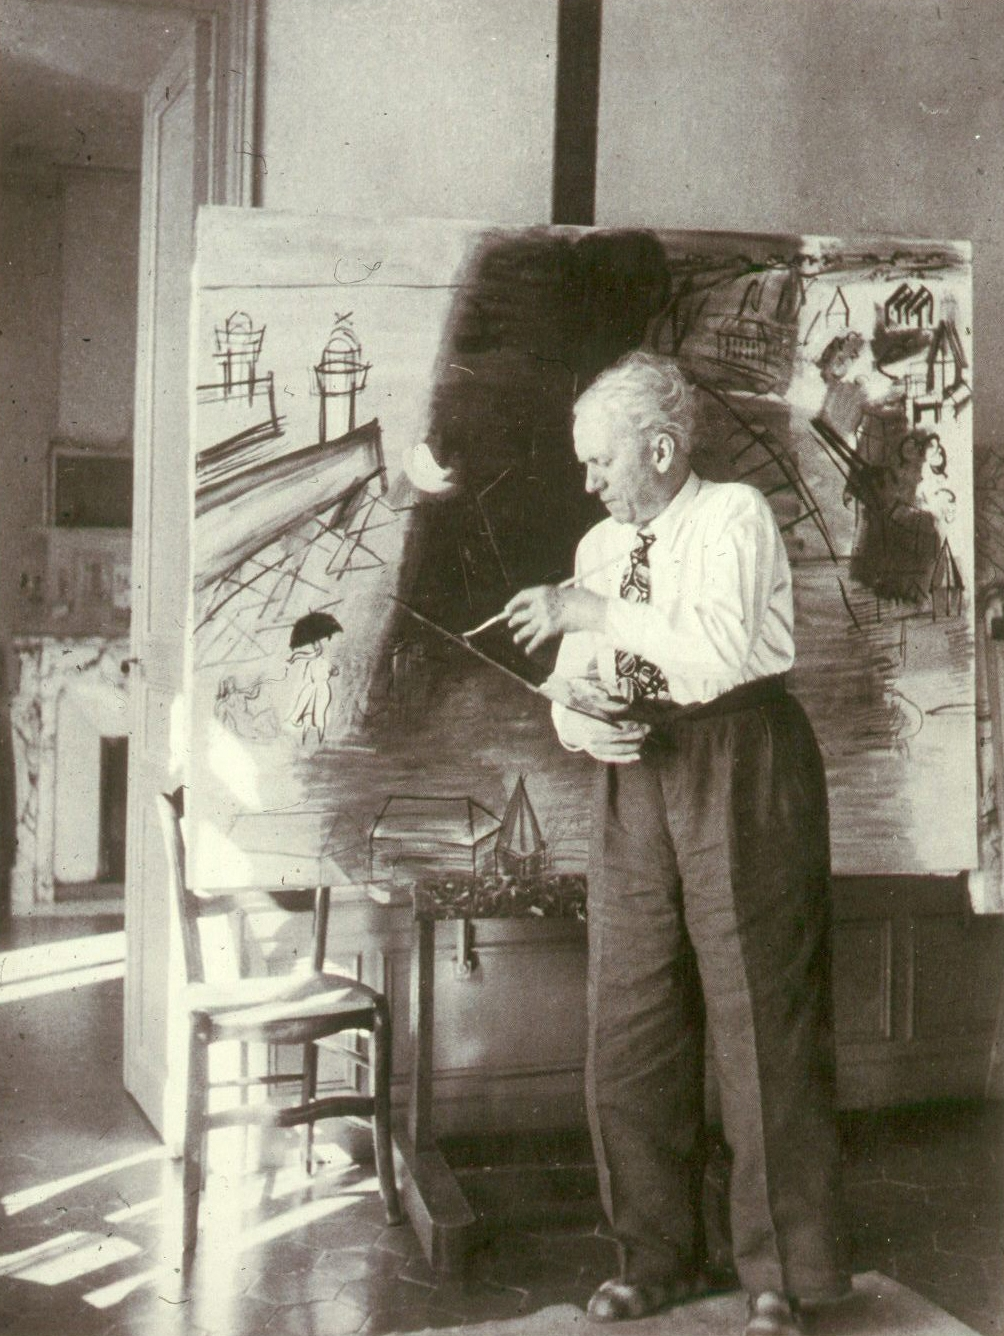 Raoul Dufy, showing the signs of the arthritis that nearly ended his career